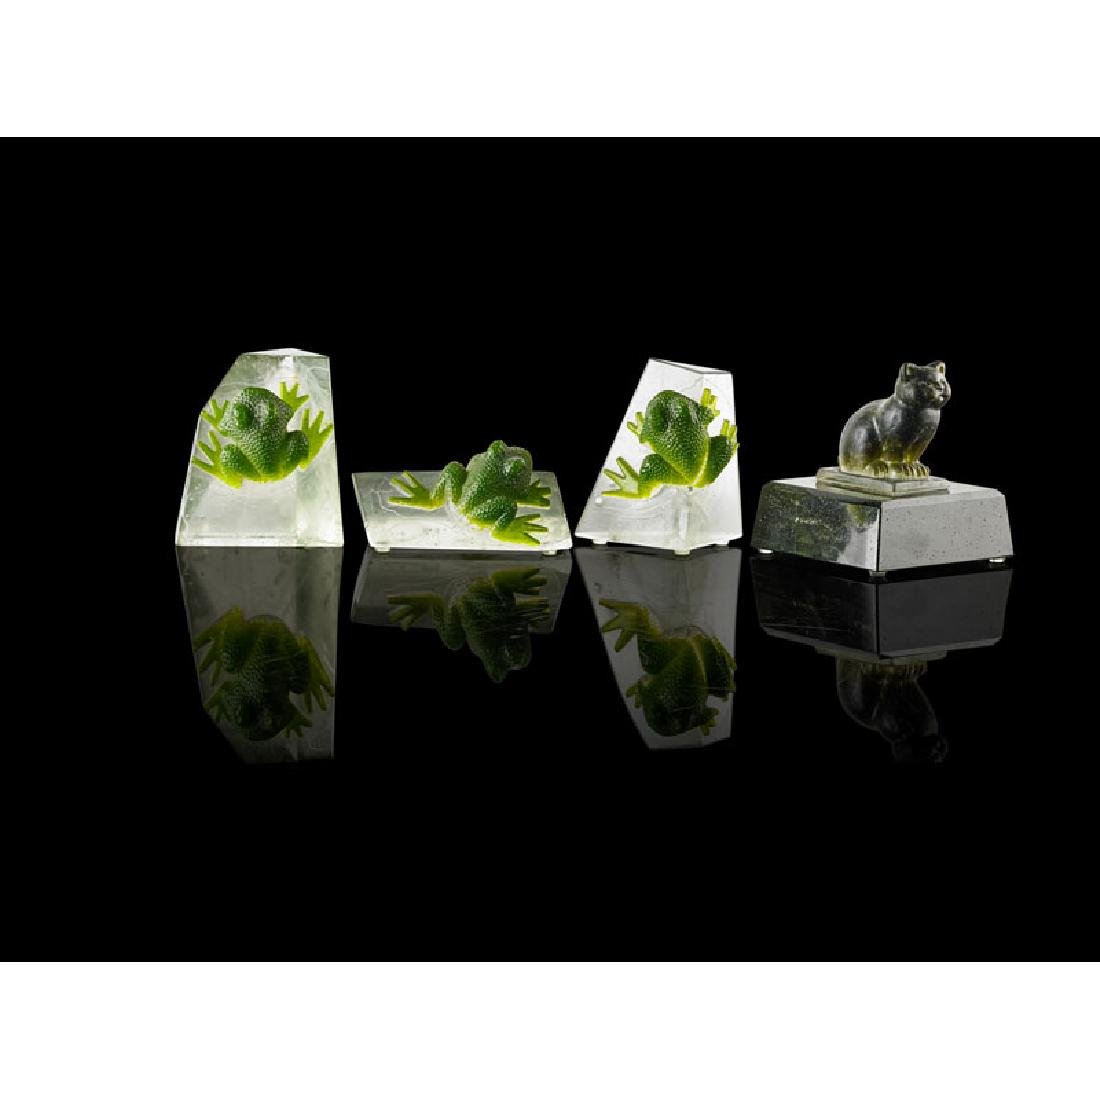 MARGIT TOTH Four glass sculptures, frogs and cat - 2